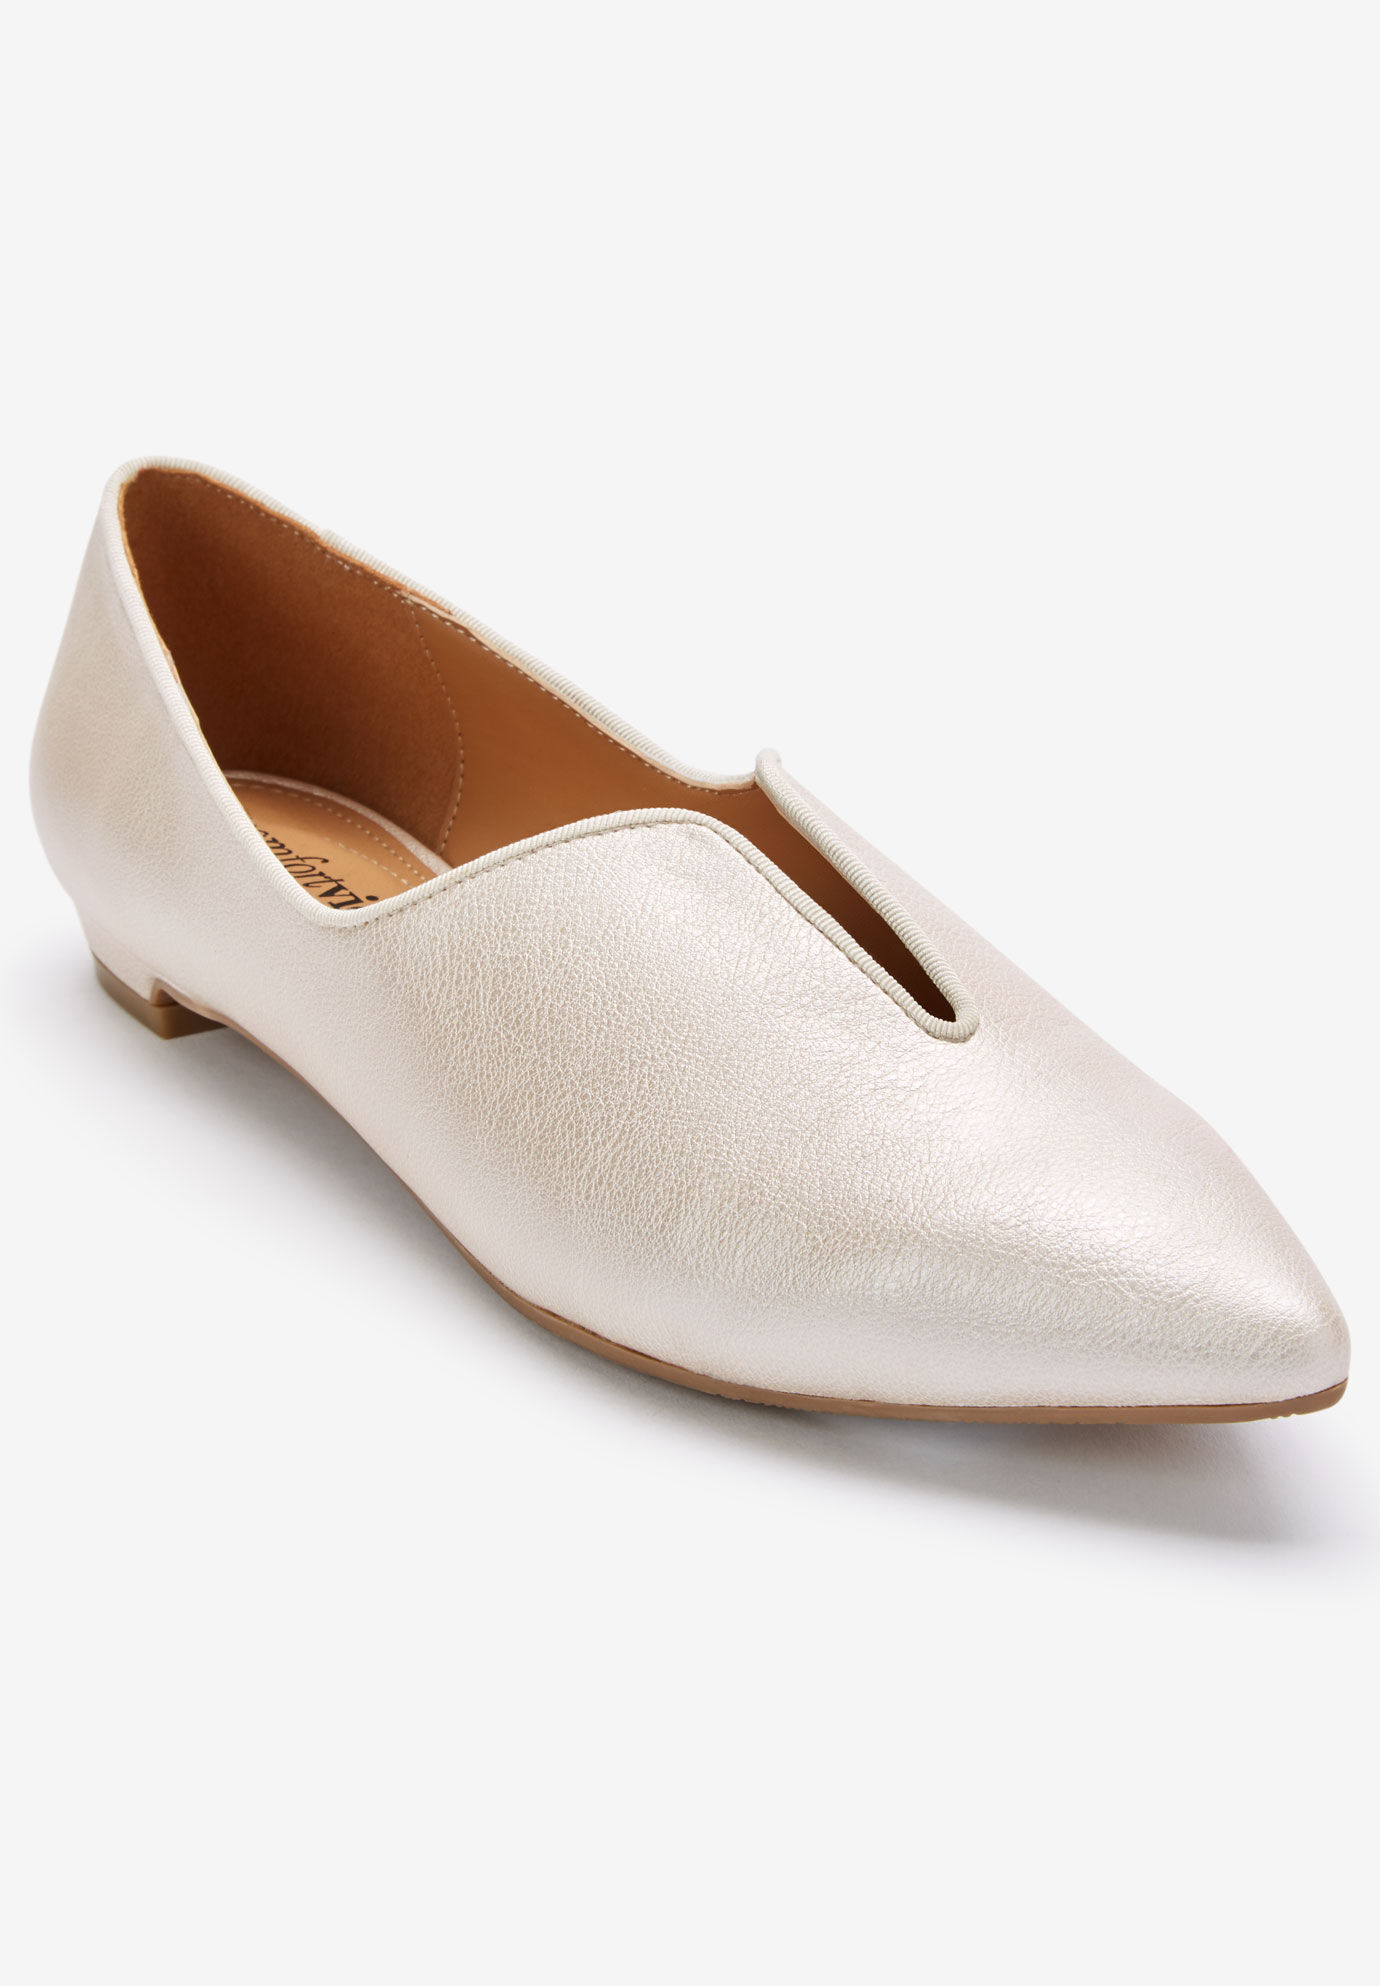 Cheap Wide Width Shoes for Women | One